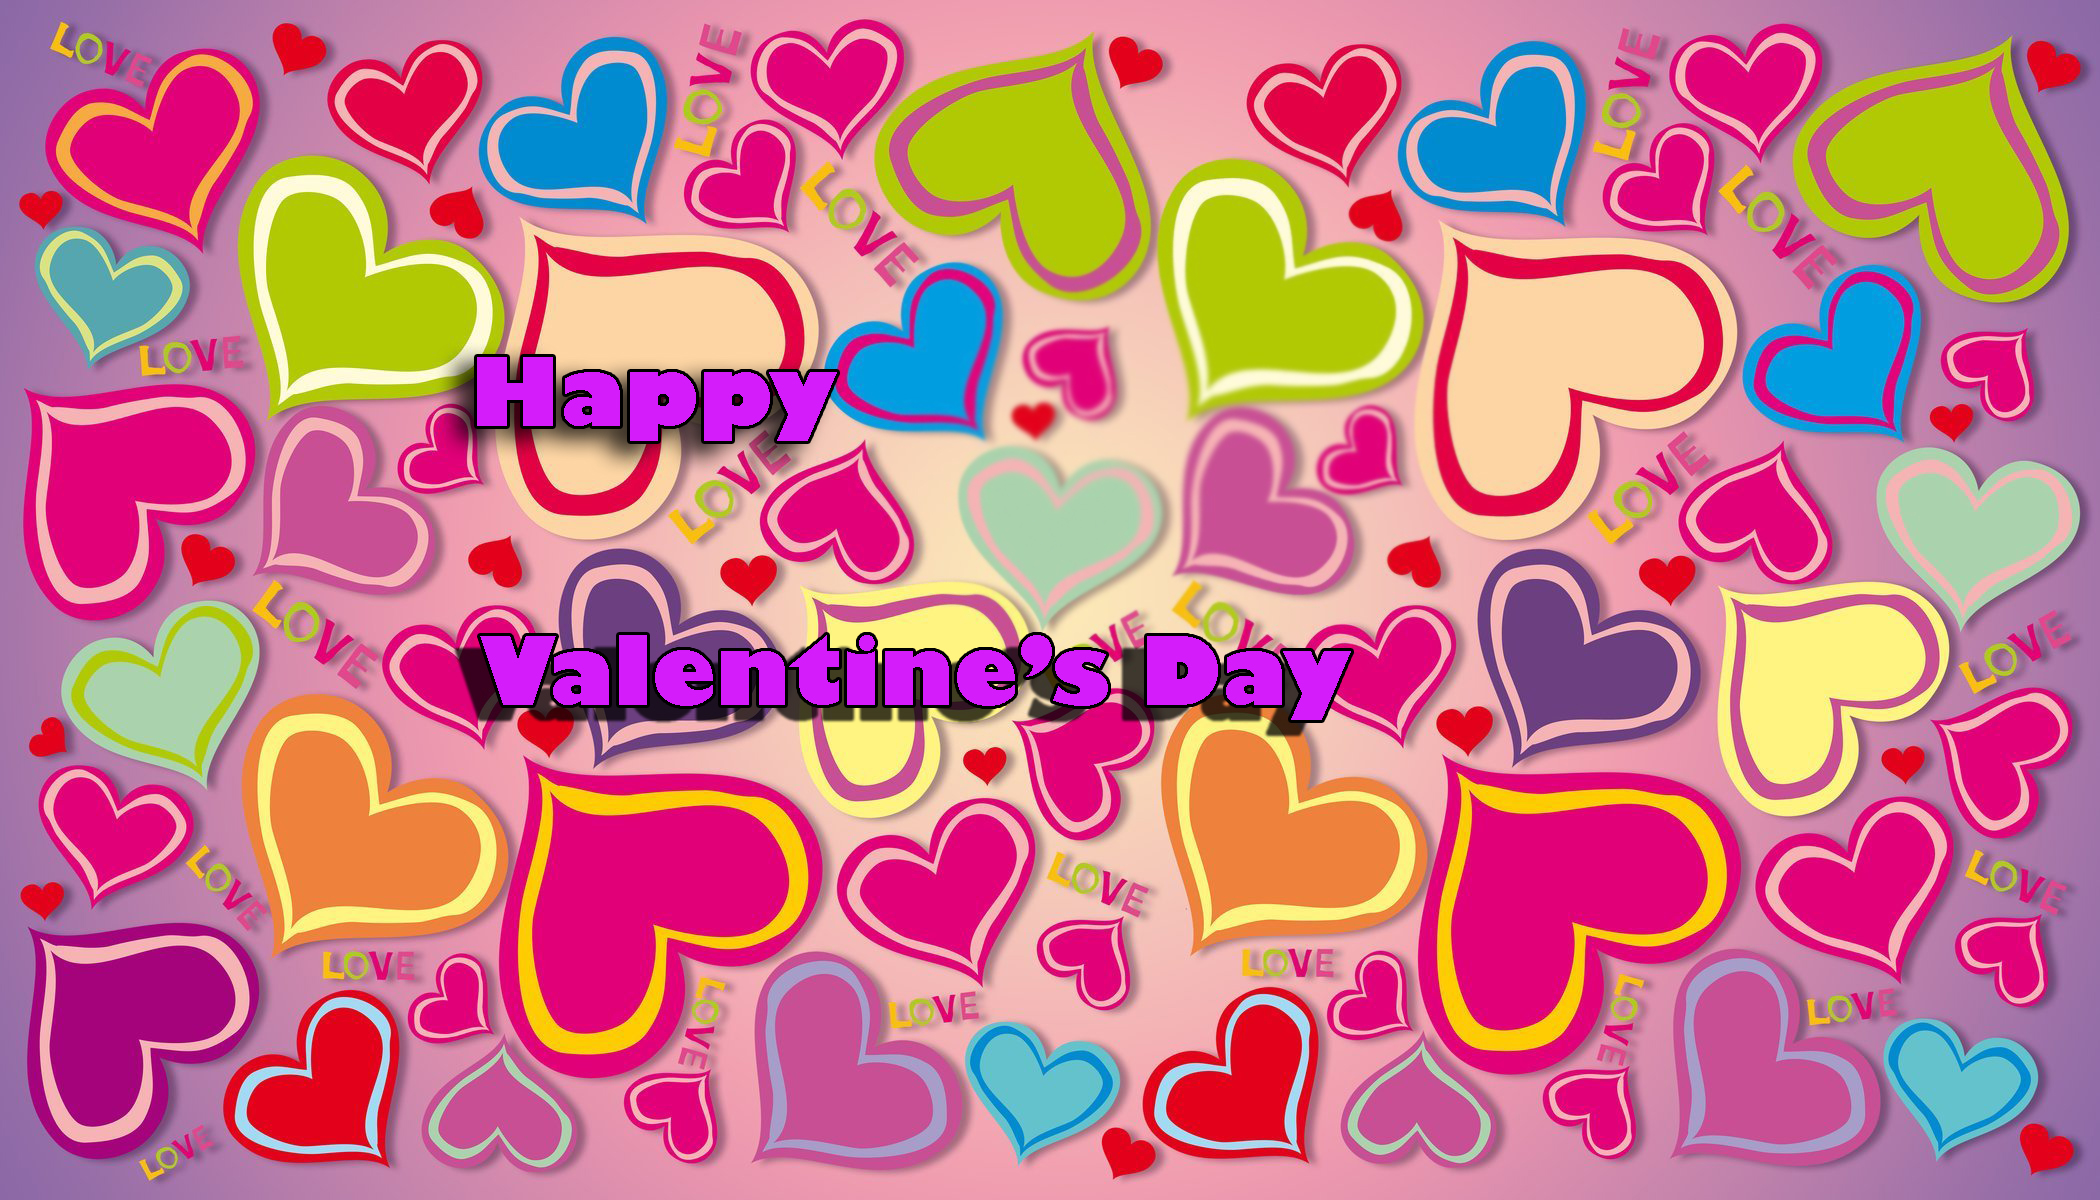 happy-valentine's-day-wish-card